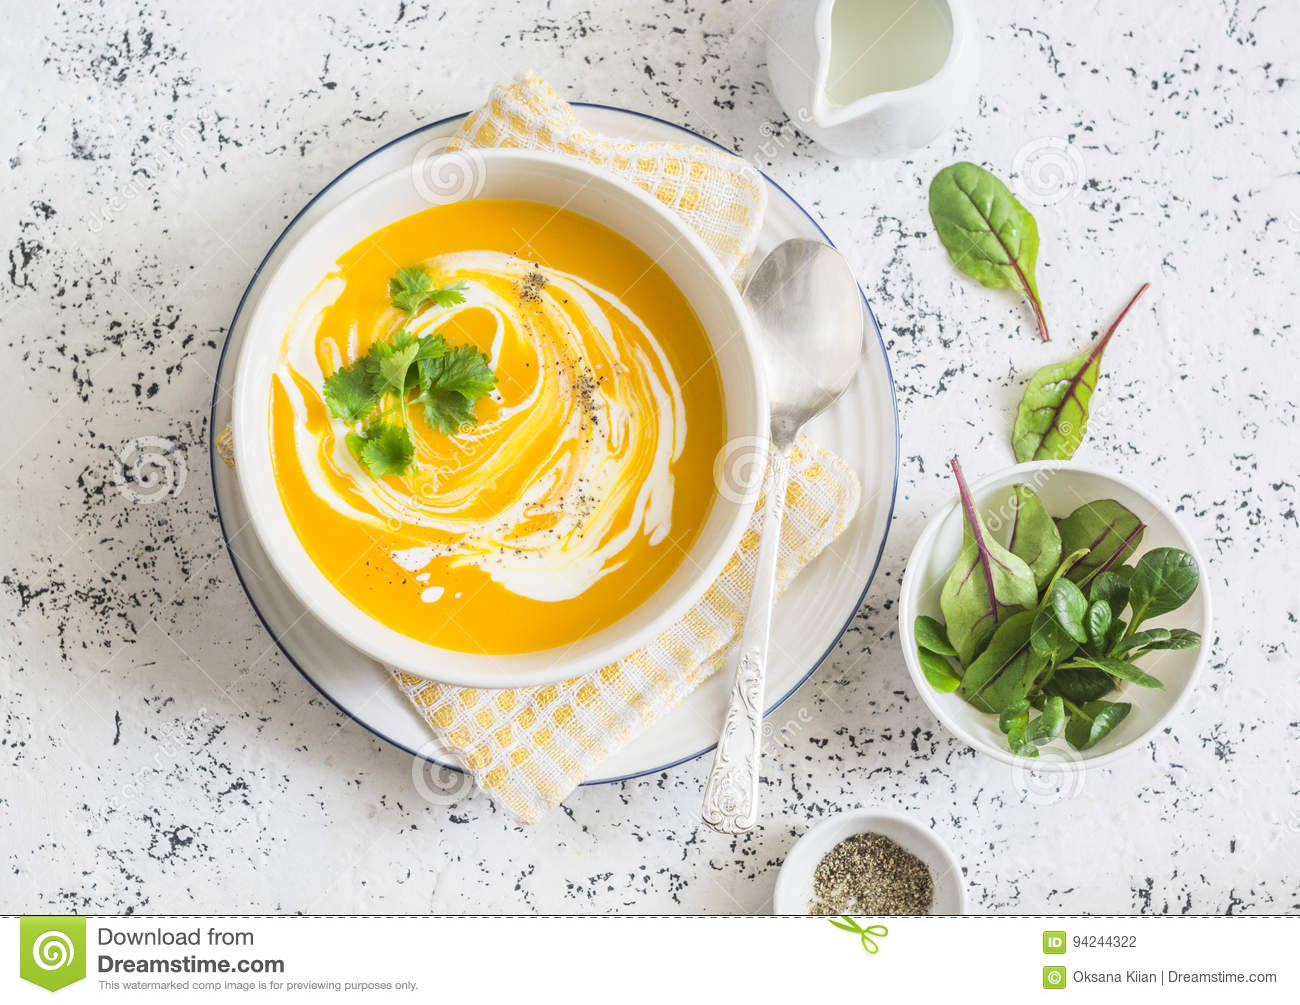 Caramelized golden beet and fall roots soup on a light background, top view. Vegetarian food